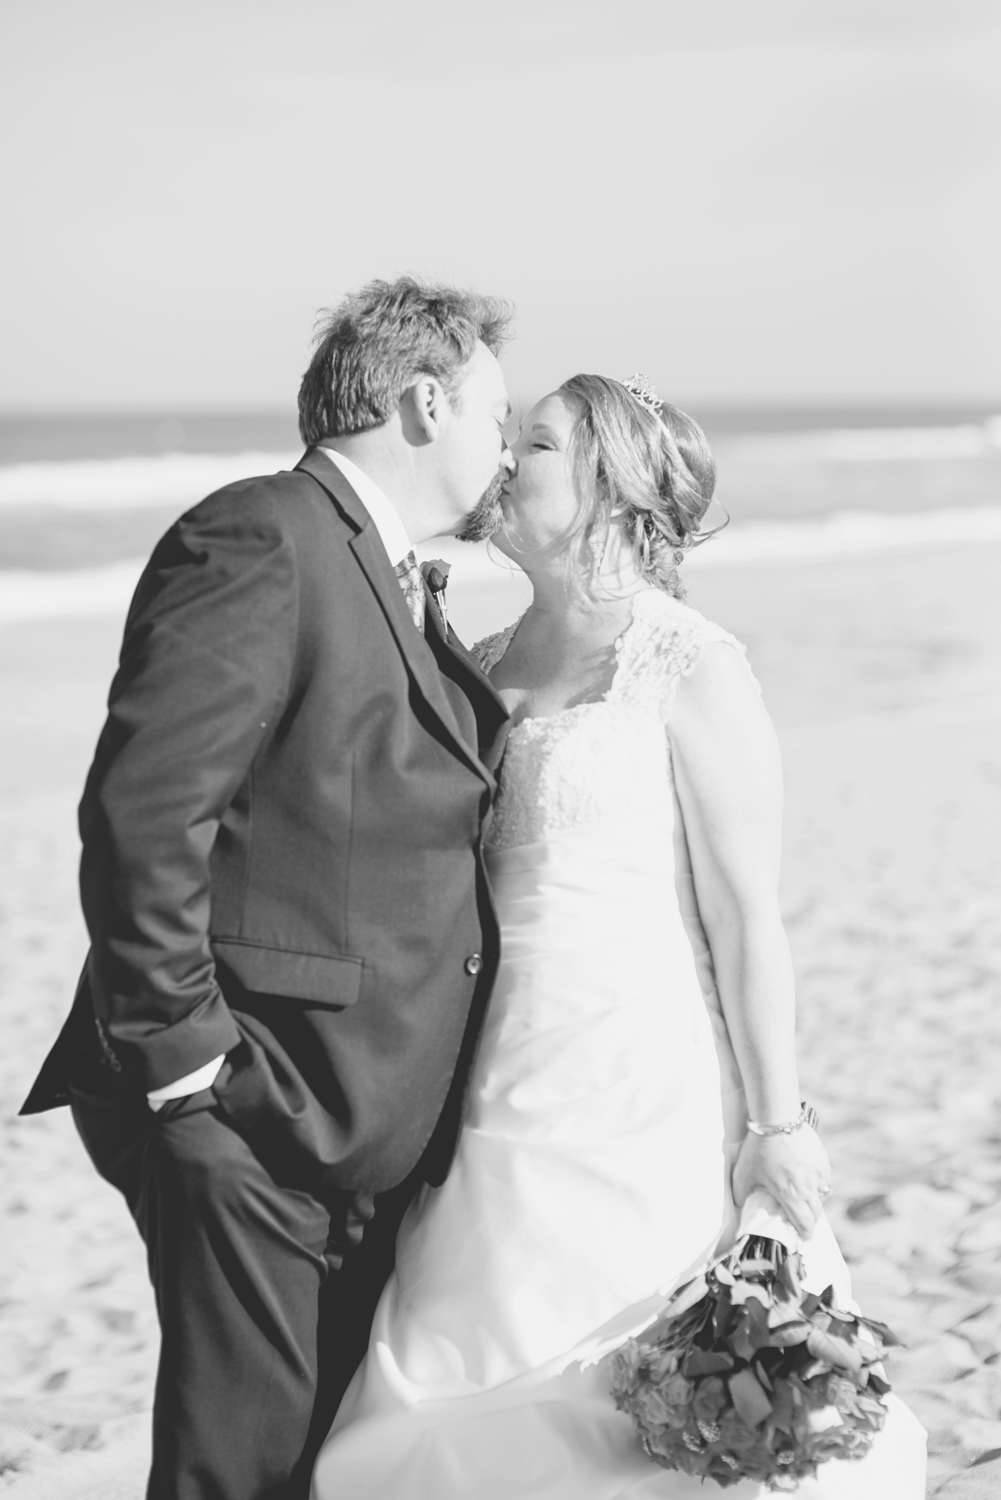 Beach bride and groom pictures | Virginia Beach wedding | Black and white